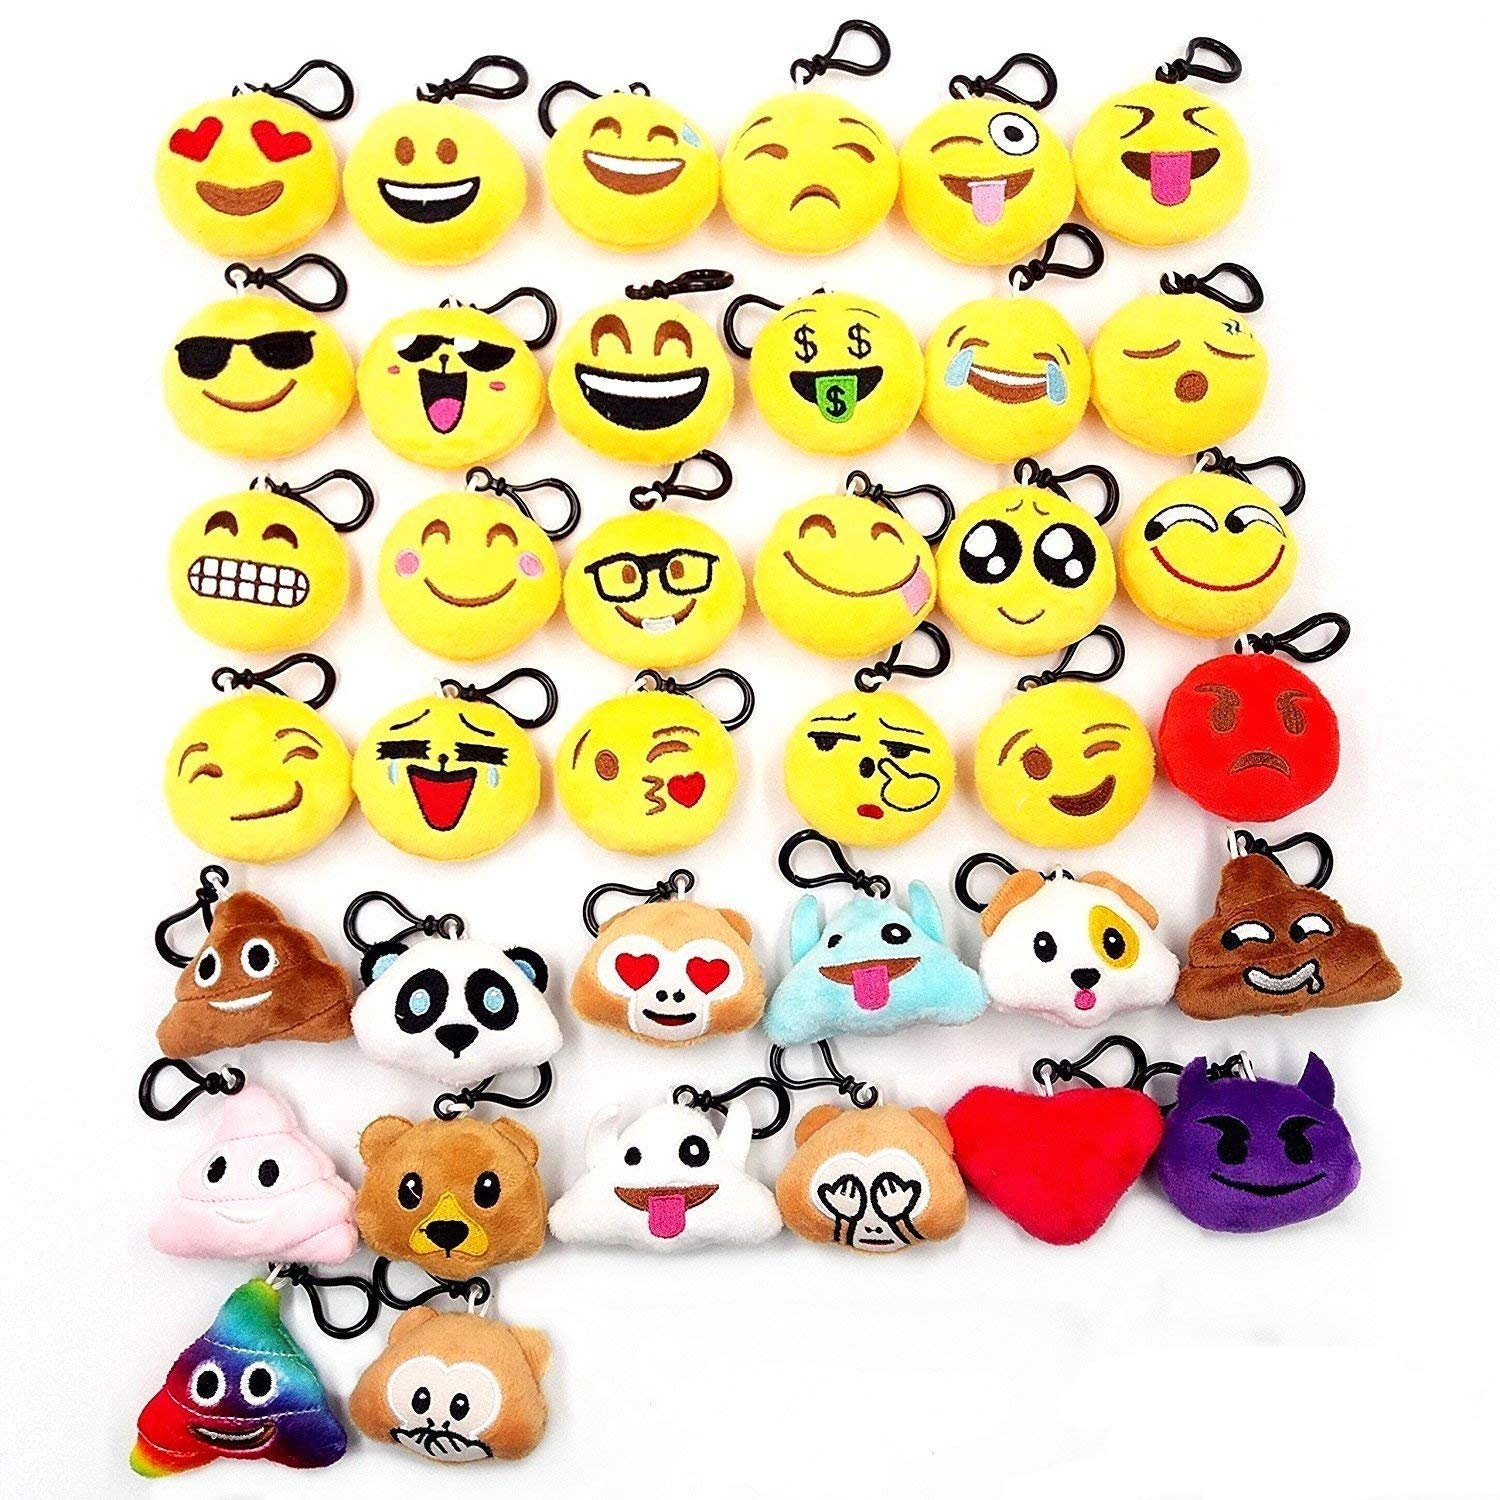 JZK 20 pcs mini plush toy, 5cm/2 inch emoji keychain emoji keyring for kids & adult birthday party favours, party bag fillers, party supplies decorations